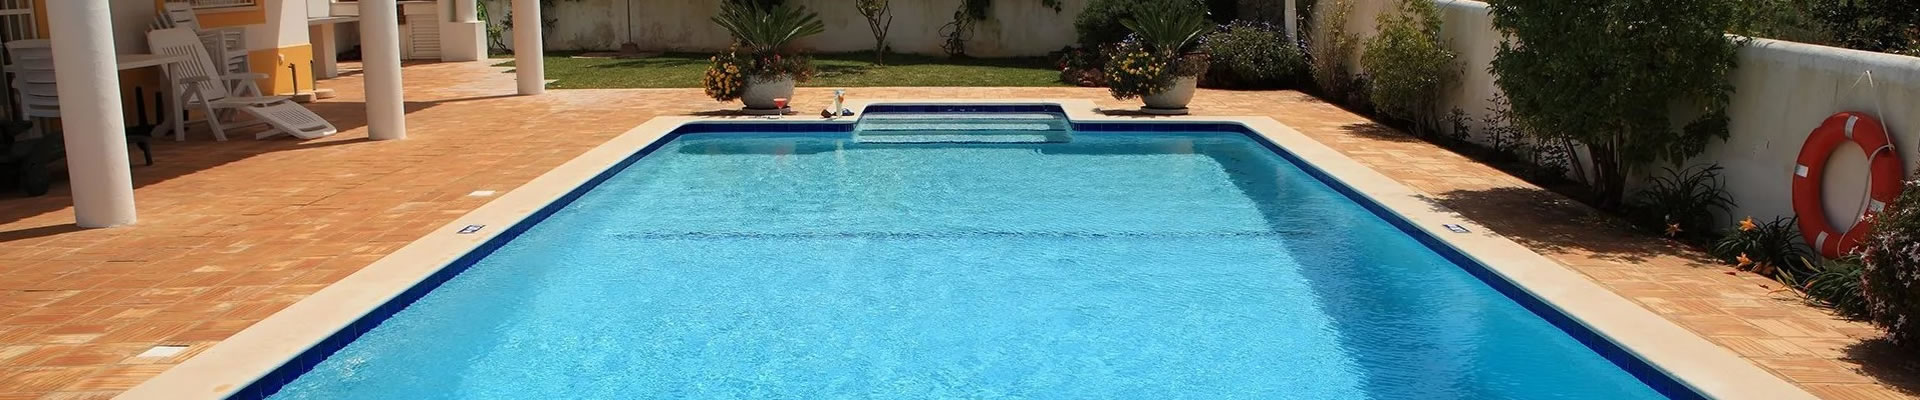 Bath Swimming Pool Supplier